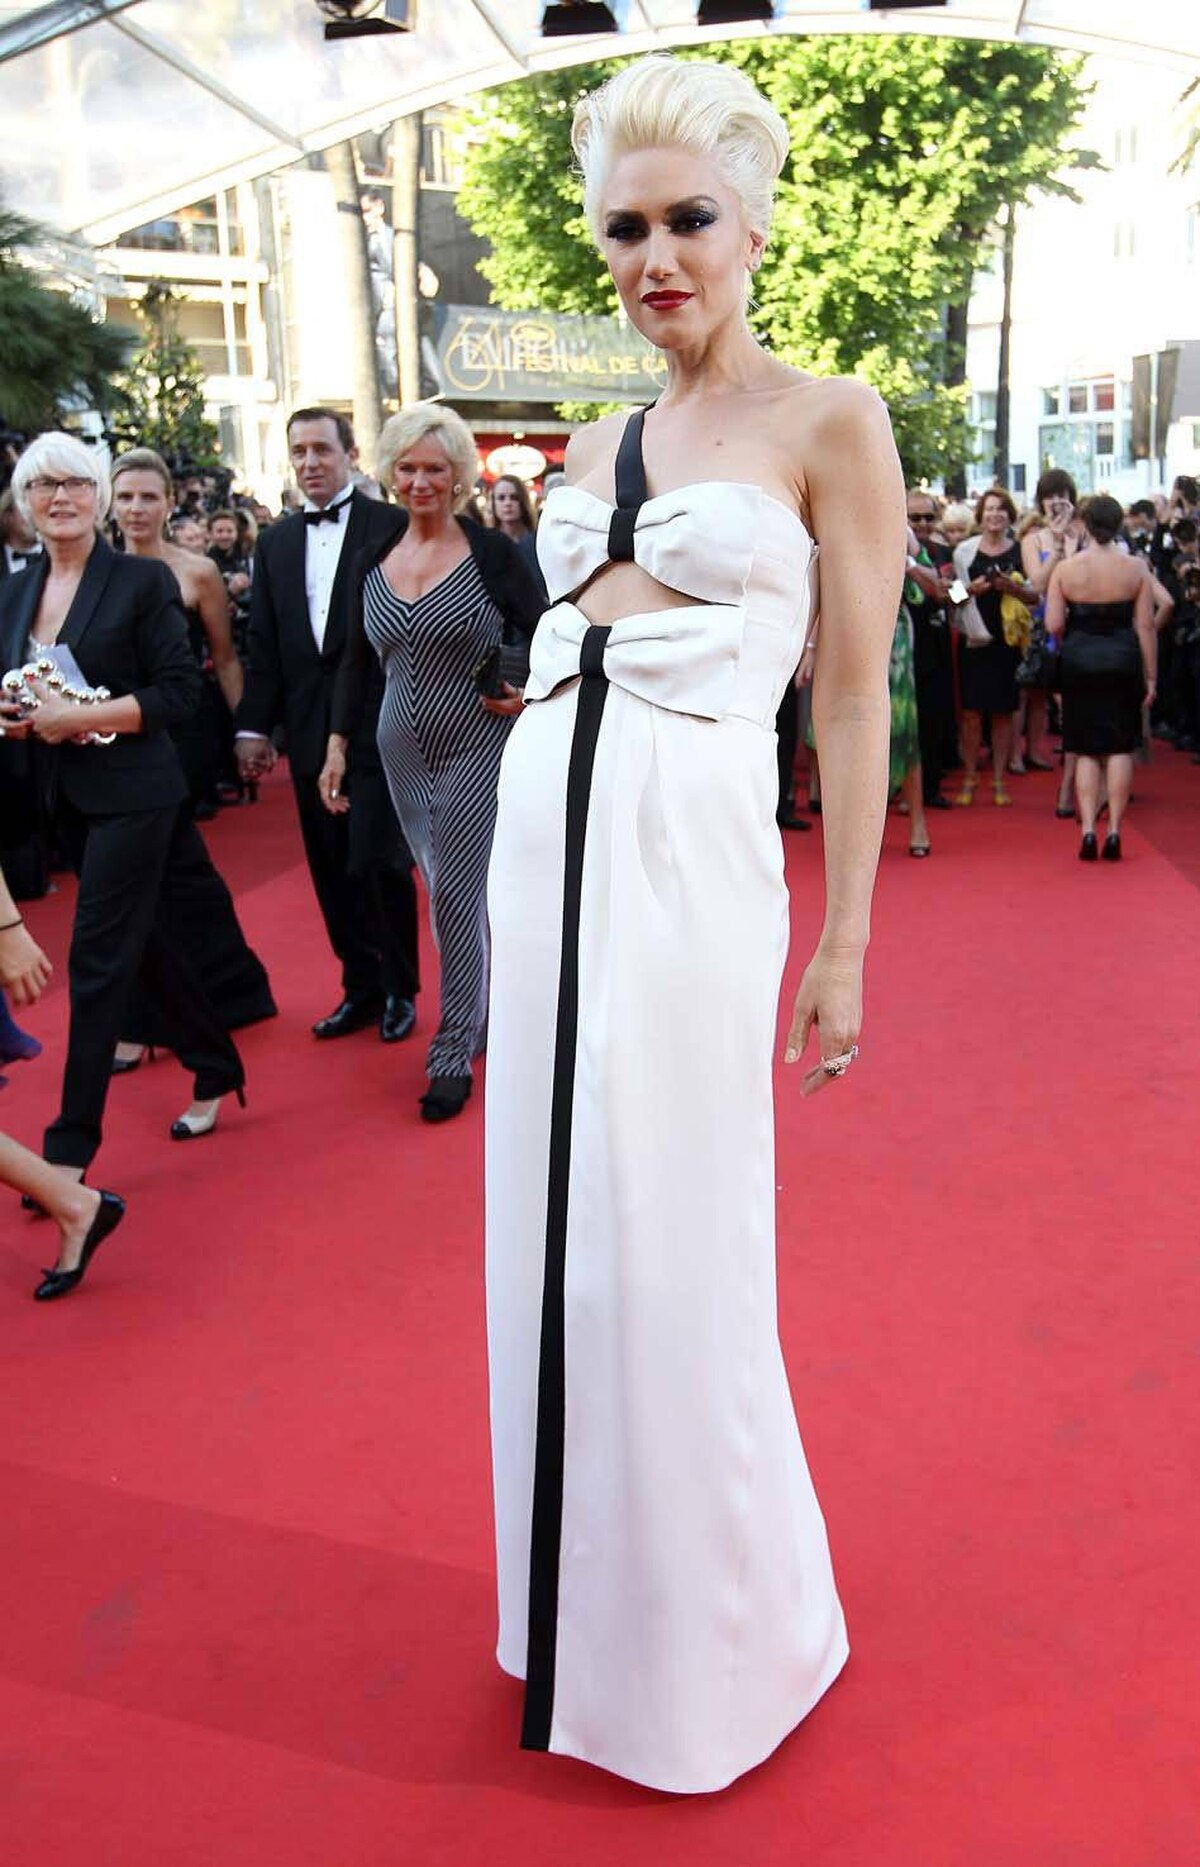 Gwen Stefani uses the same red carpet to unveil another new look: Suburban Bride of Frankenstein.